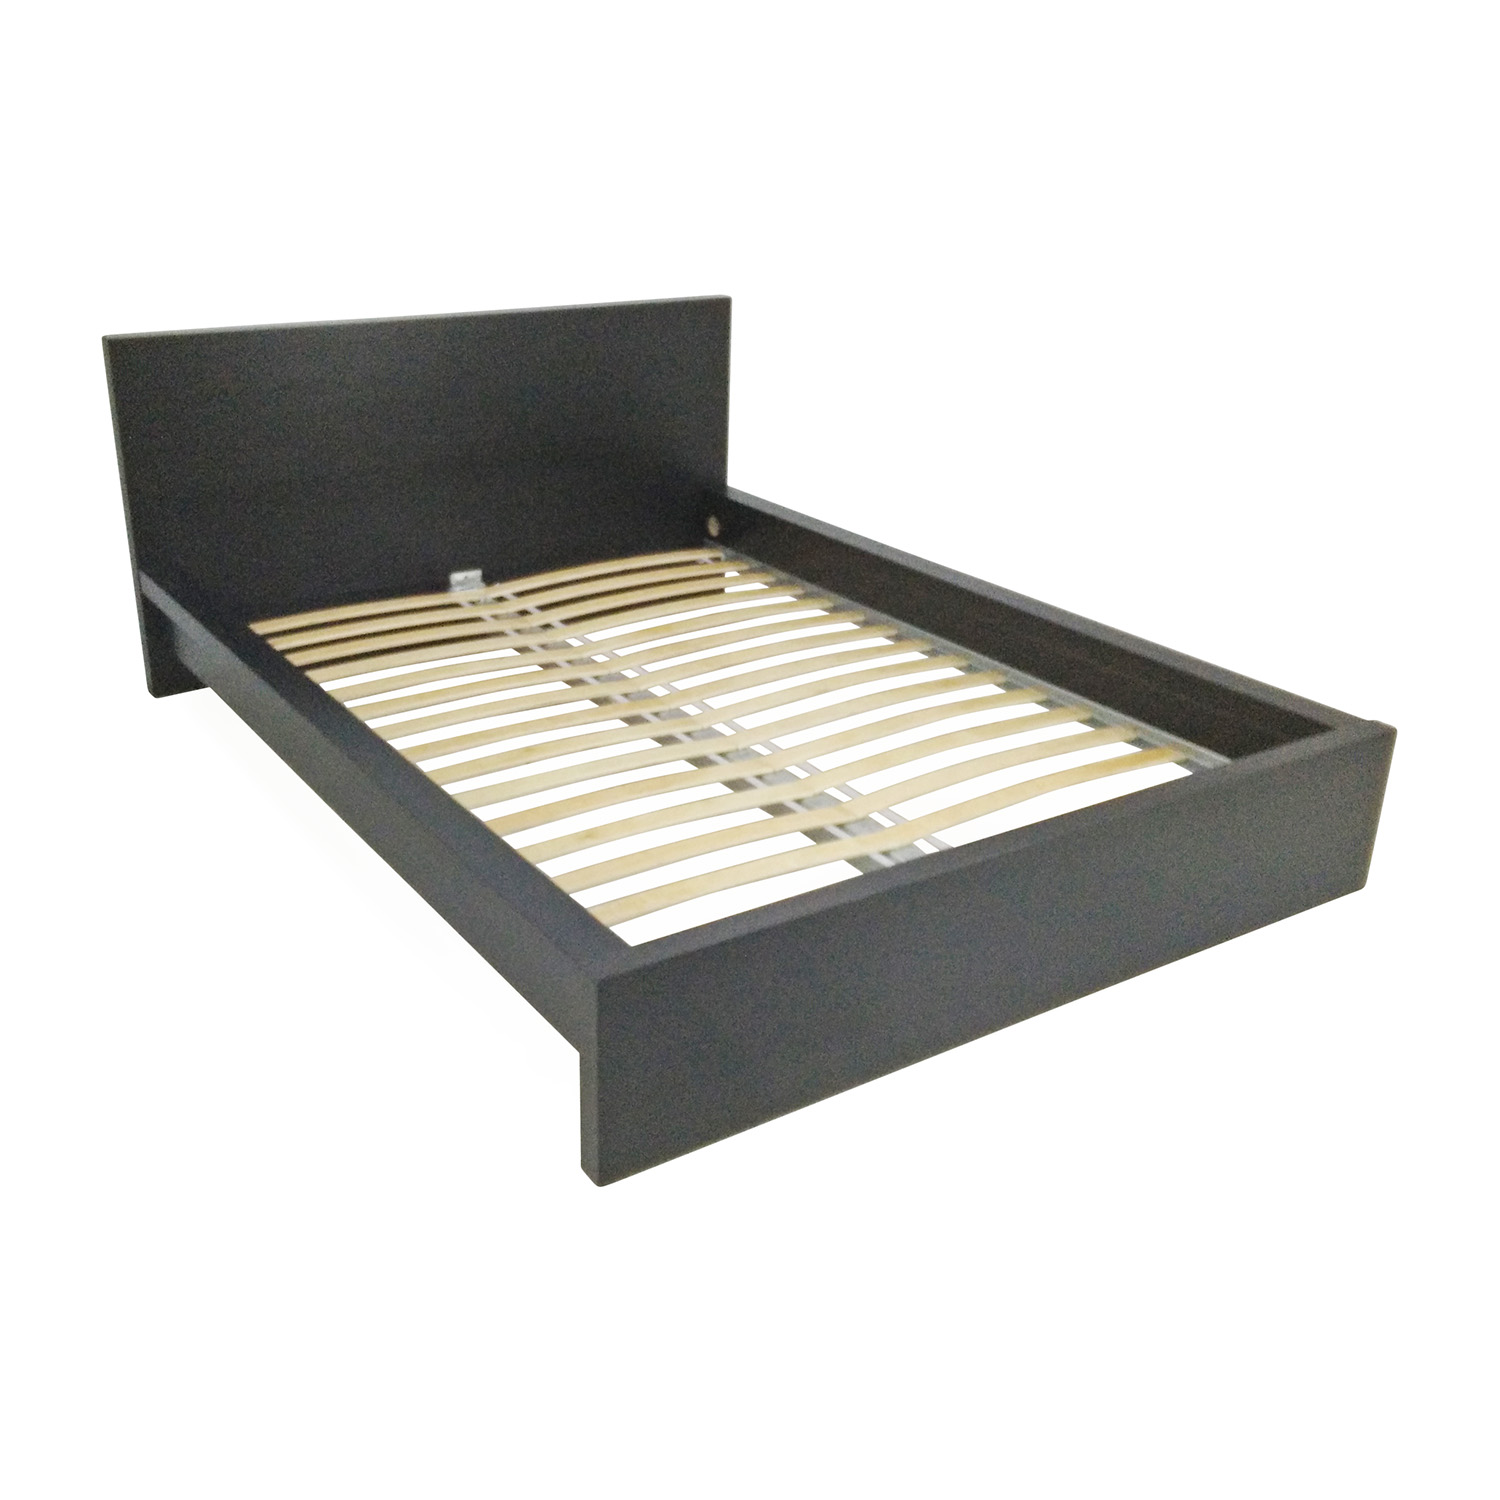 51 off ikea malm black bed frame beds for Ikea mattress frame